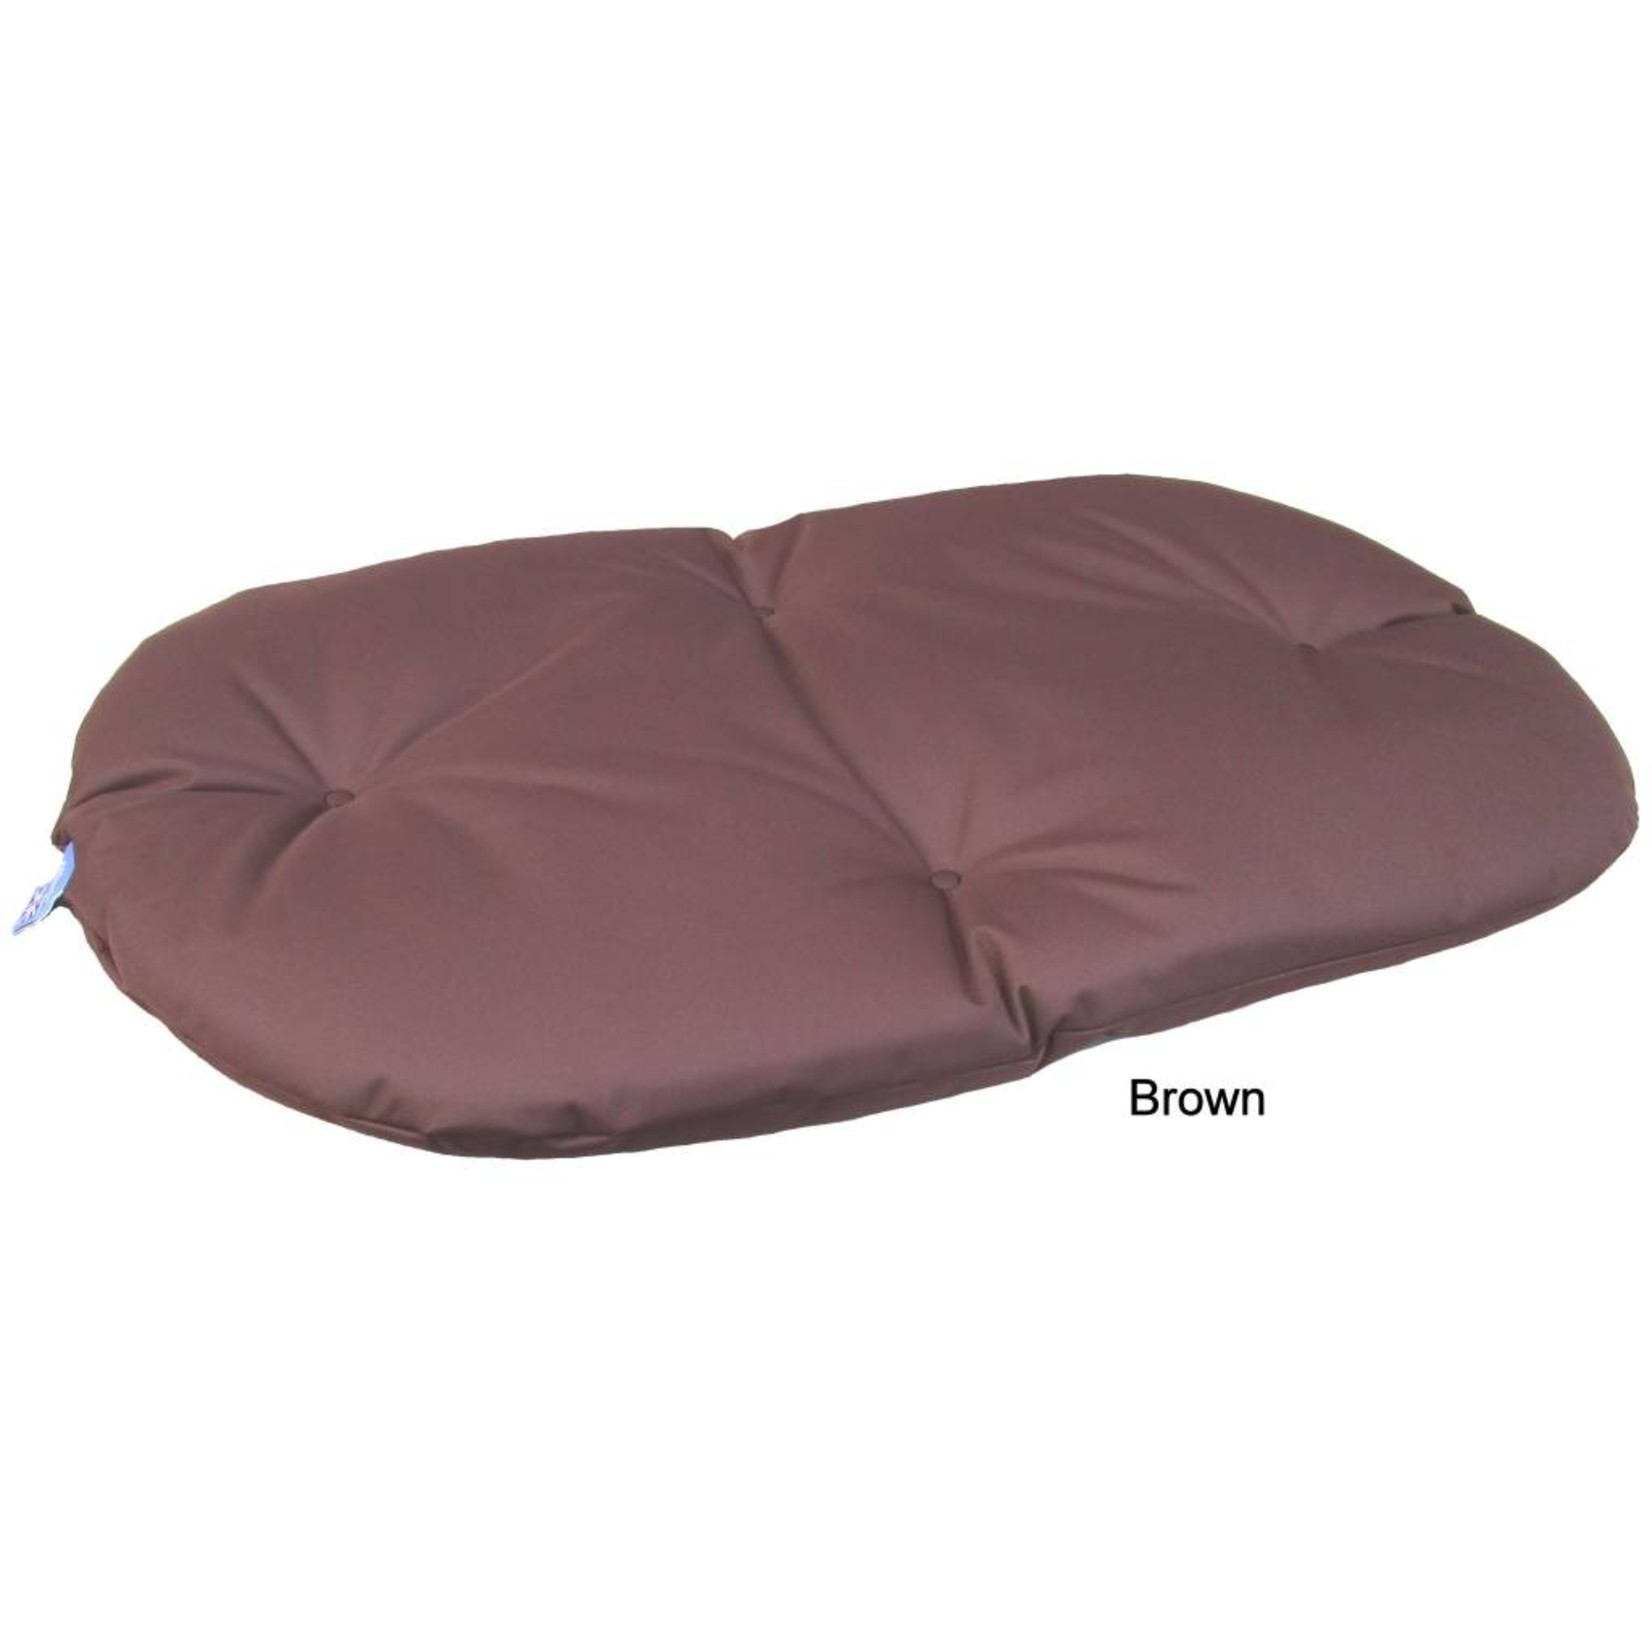 Pets & Leisure Country Dog Heavy Duty Oval Waterproof Cushion Pad in Brown